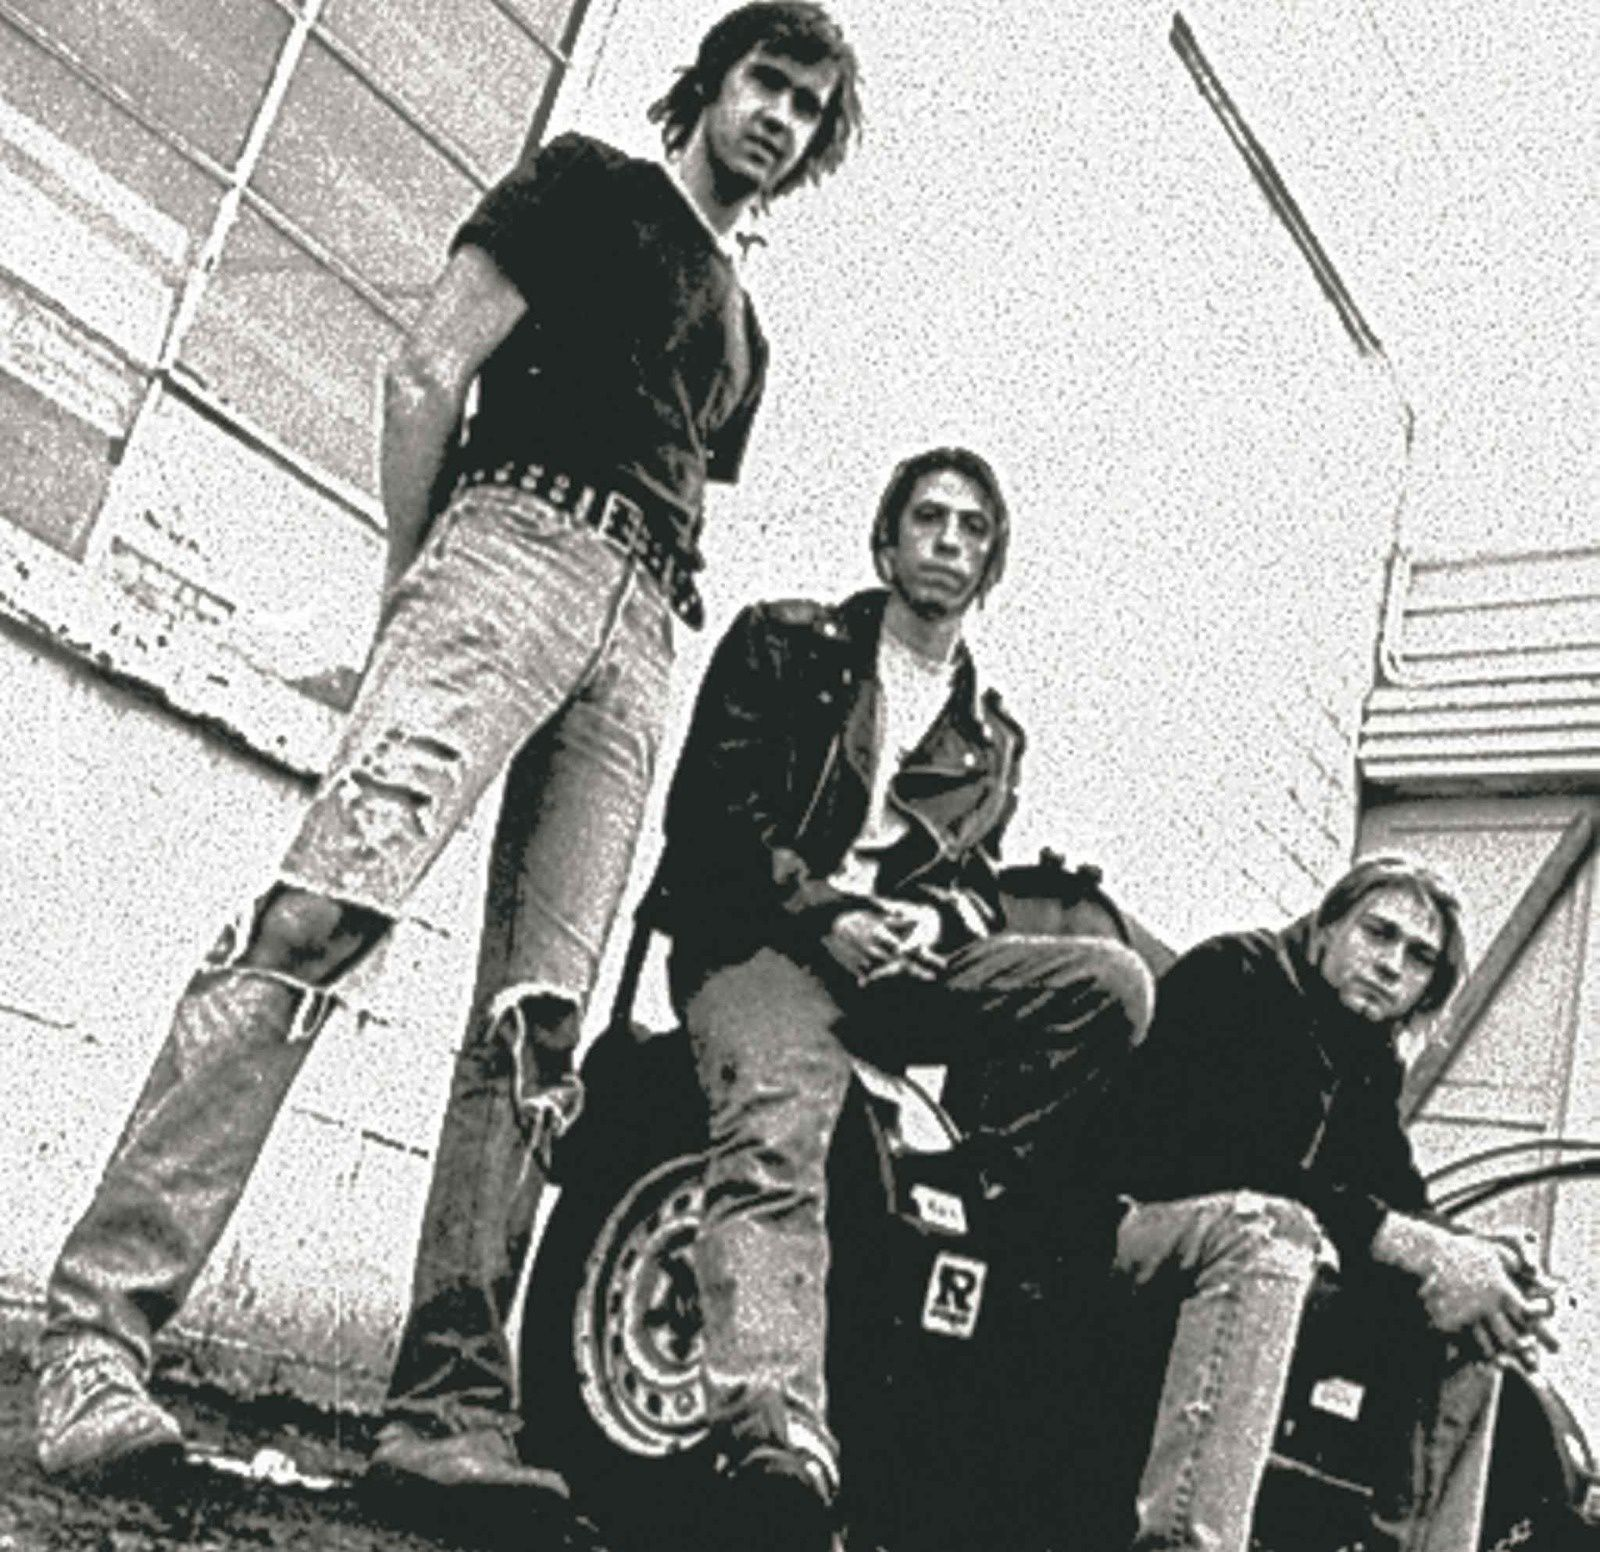 Nirvana in 1991 (from left) Krist Novoselic, Dave Grohl and Kurt Cobain